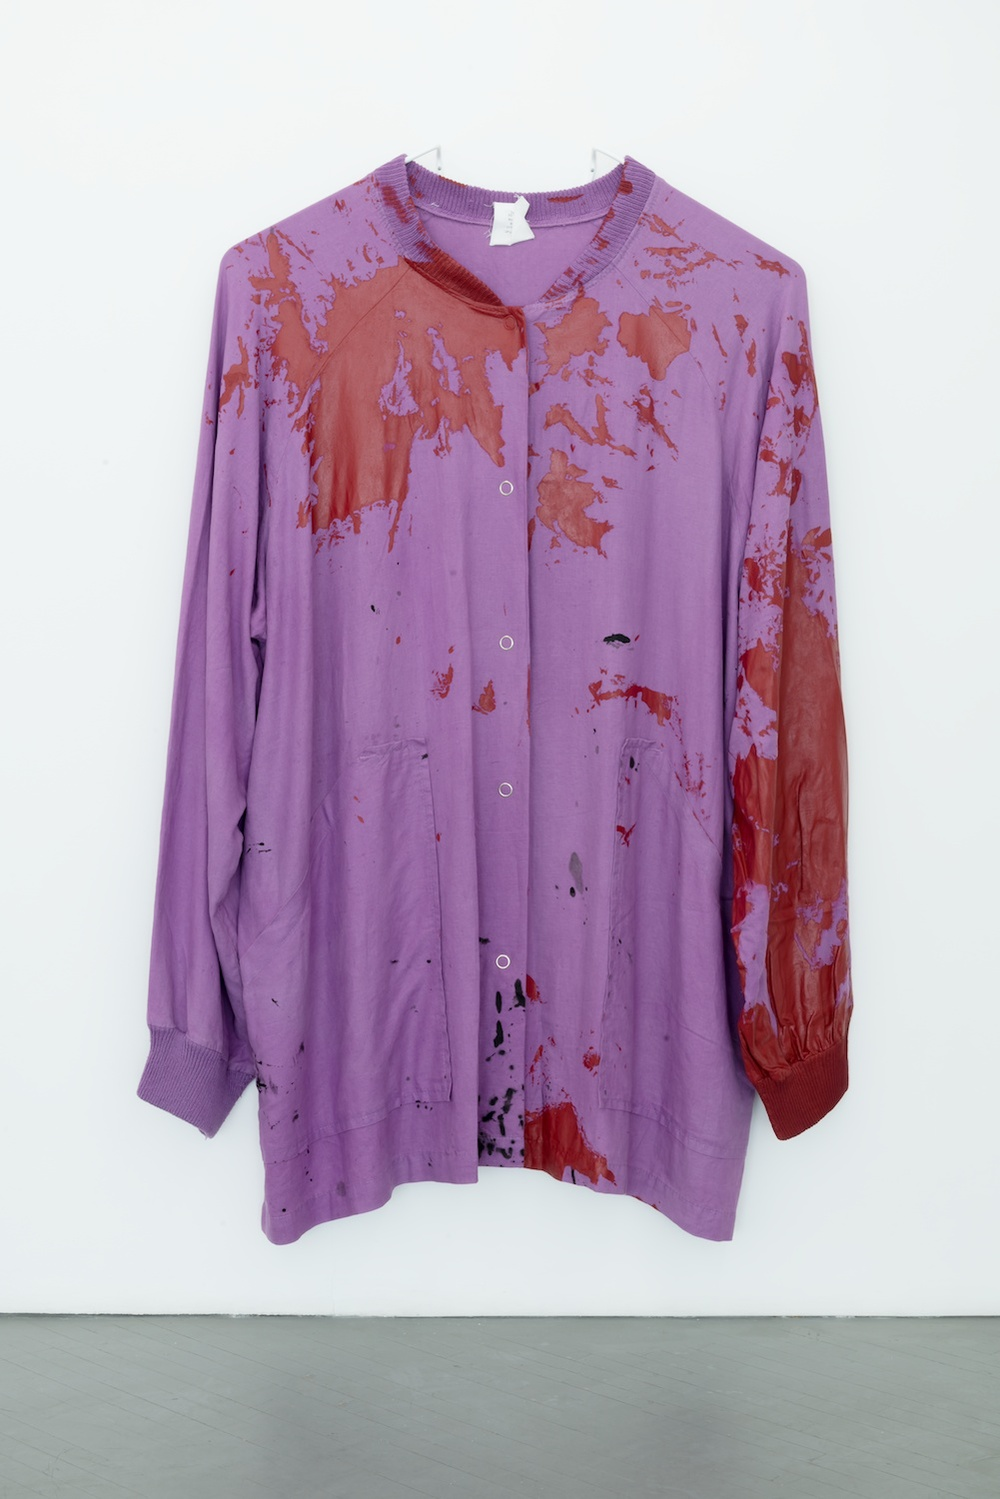 "Amanda Ross-Ho UNTITLED SMOCK (ACCIDENT) 2013 Dyed linen, hand knit linen, cotton/acrylic blend, heat transfer, thread, latex paint, acrylic paint, prong snap buttons 85"" x 50"" ARH074"